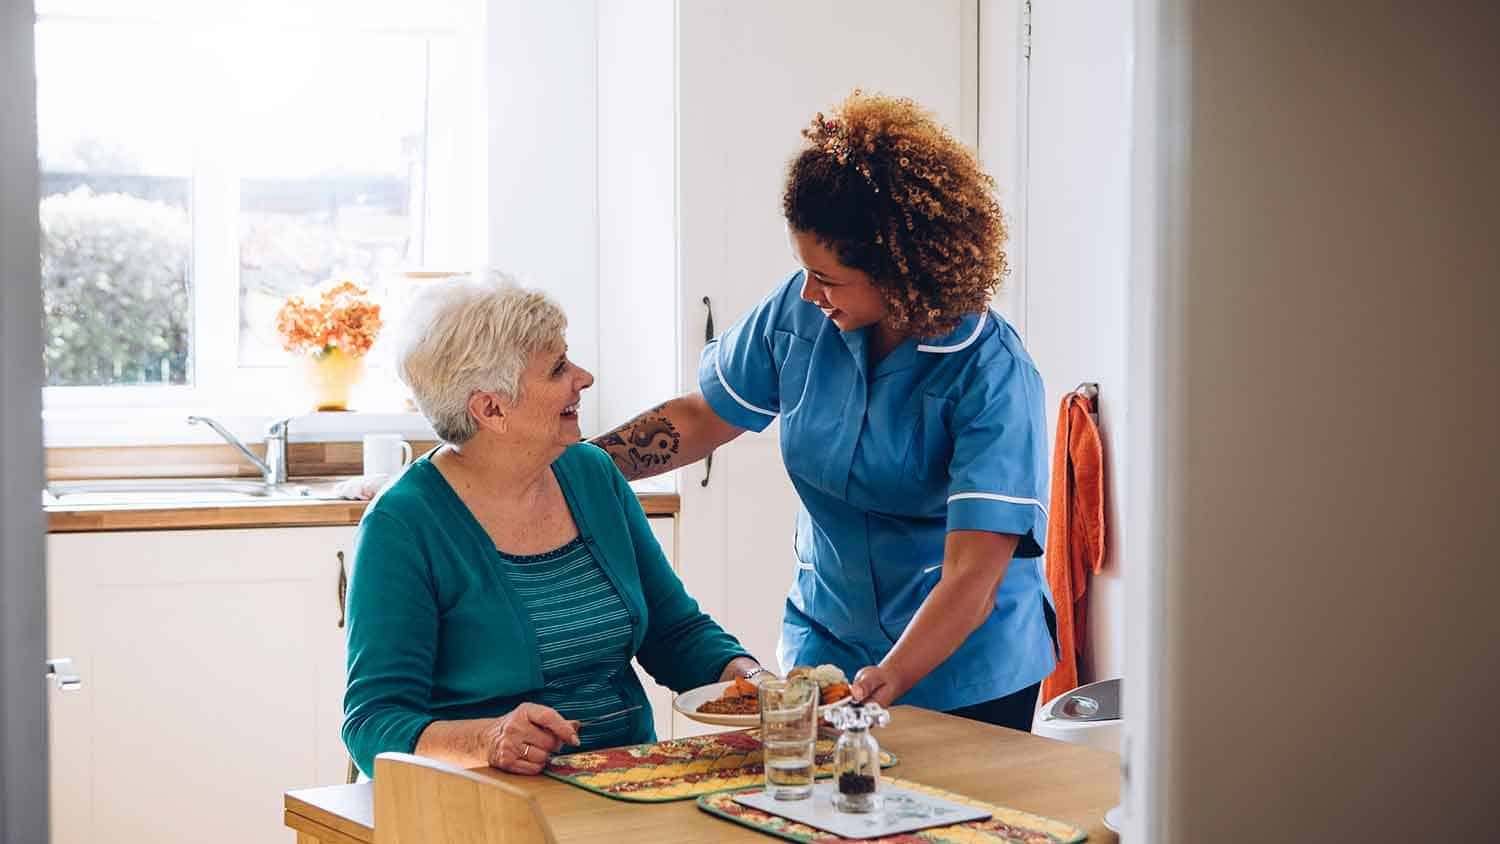 Nurse giving an older lady a meal. Both are smiling.